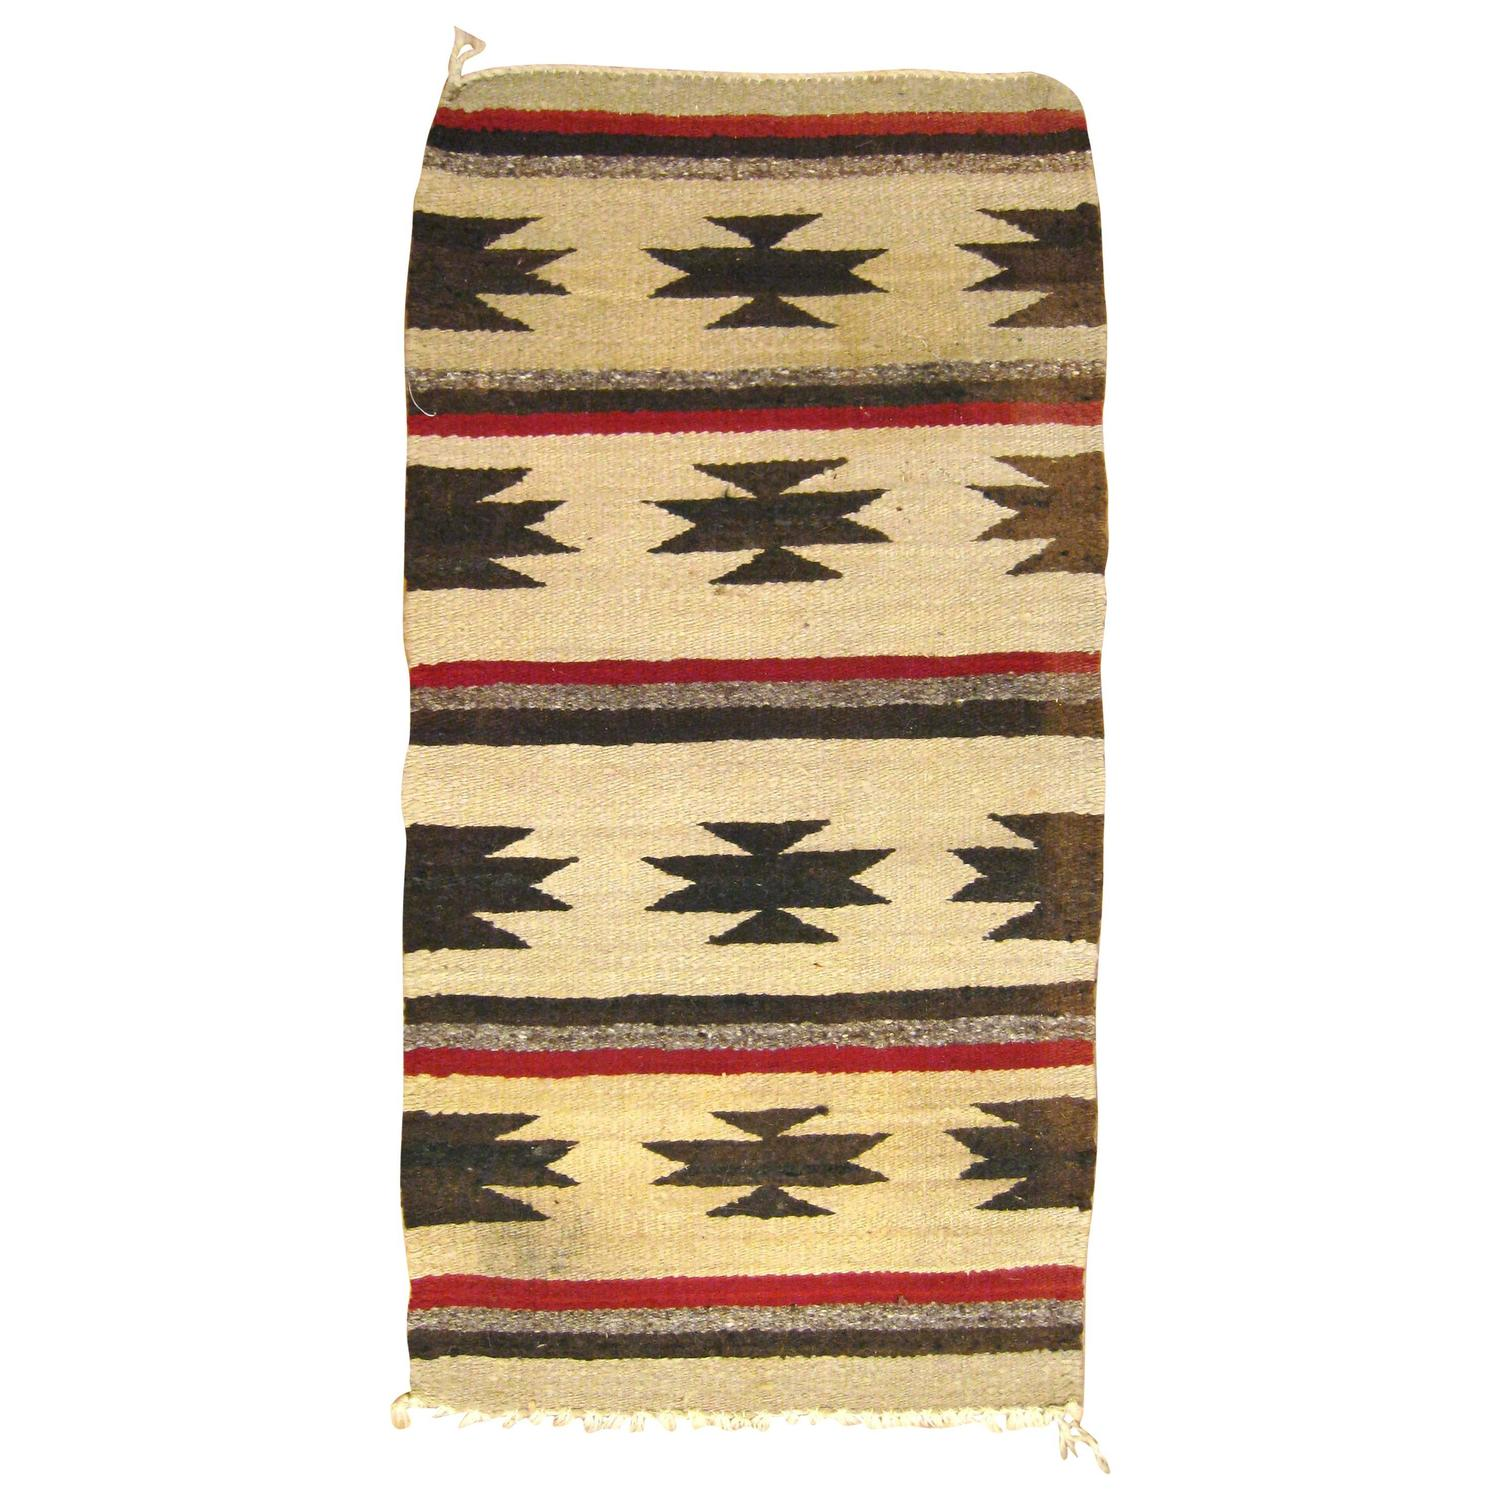 Vintage Mexican Zapotec Rug With Stars And Stripes Design